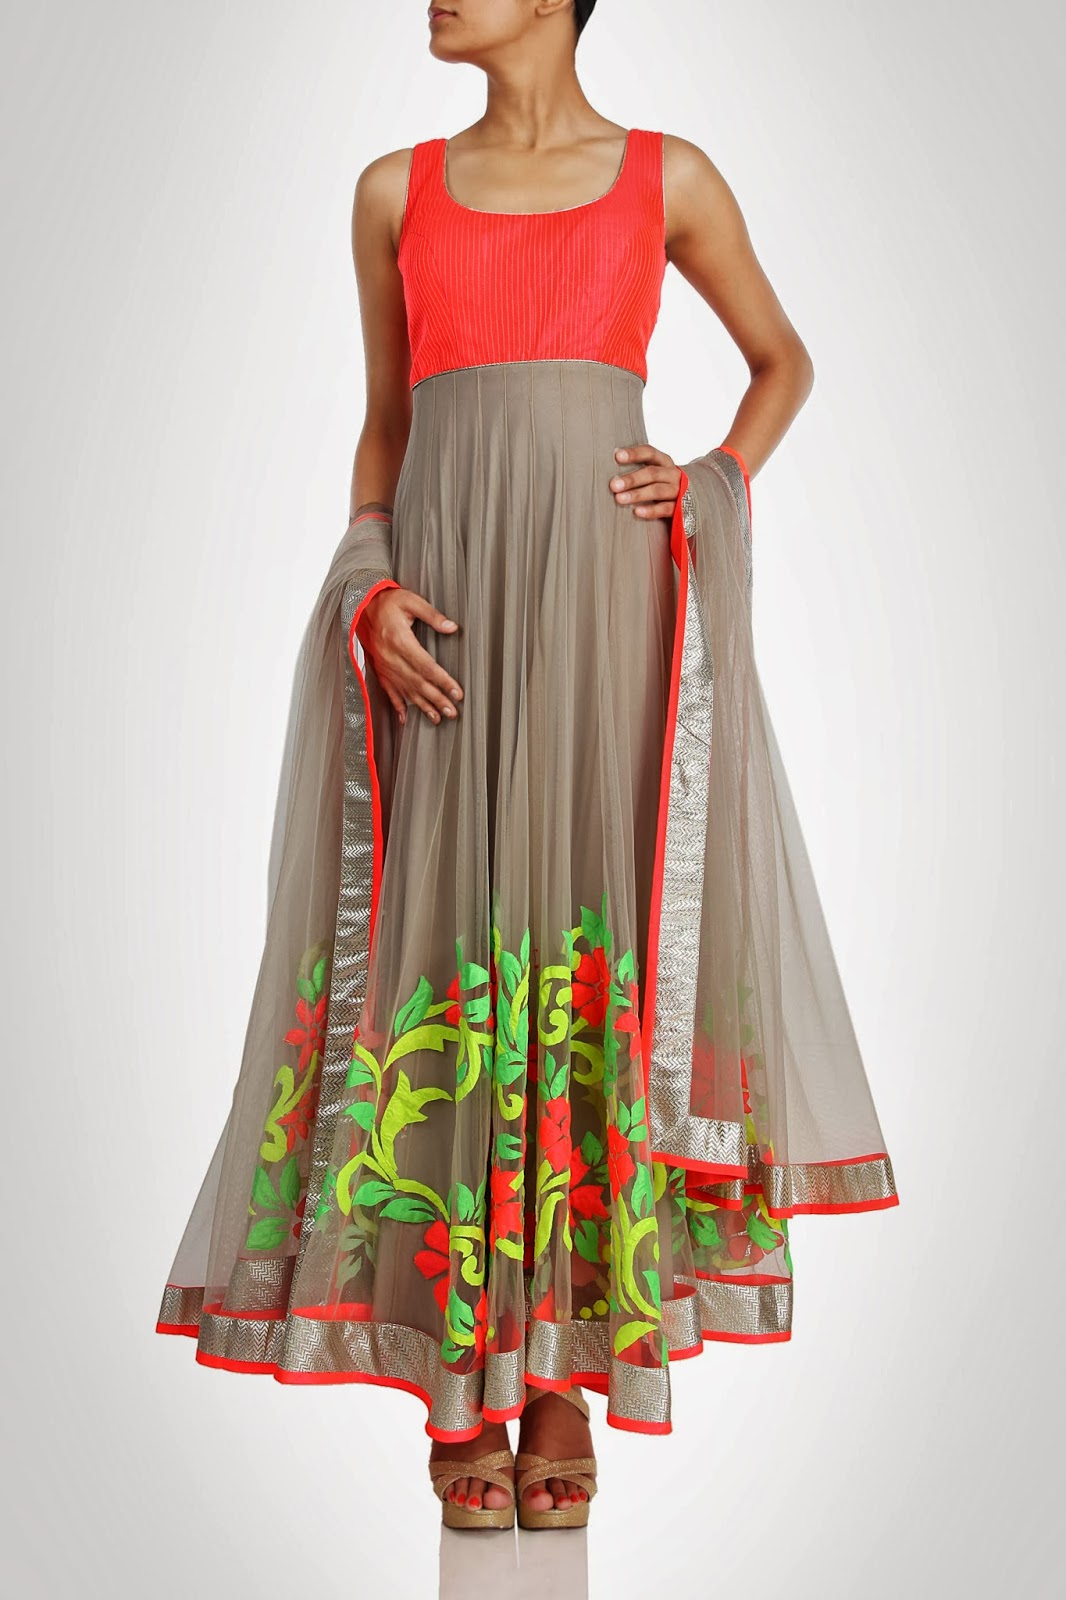 the best wedding dresses 2013 by seema gujral sketch